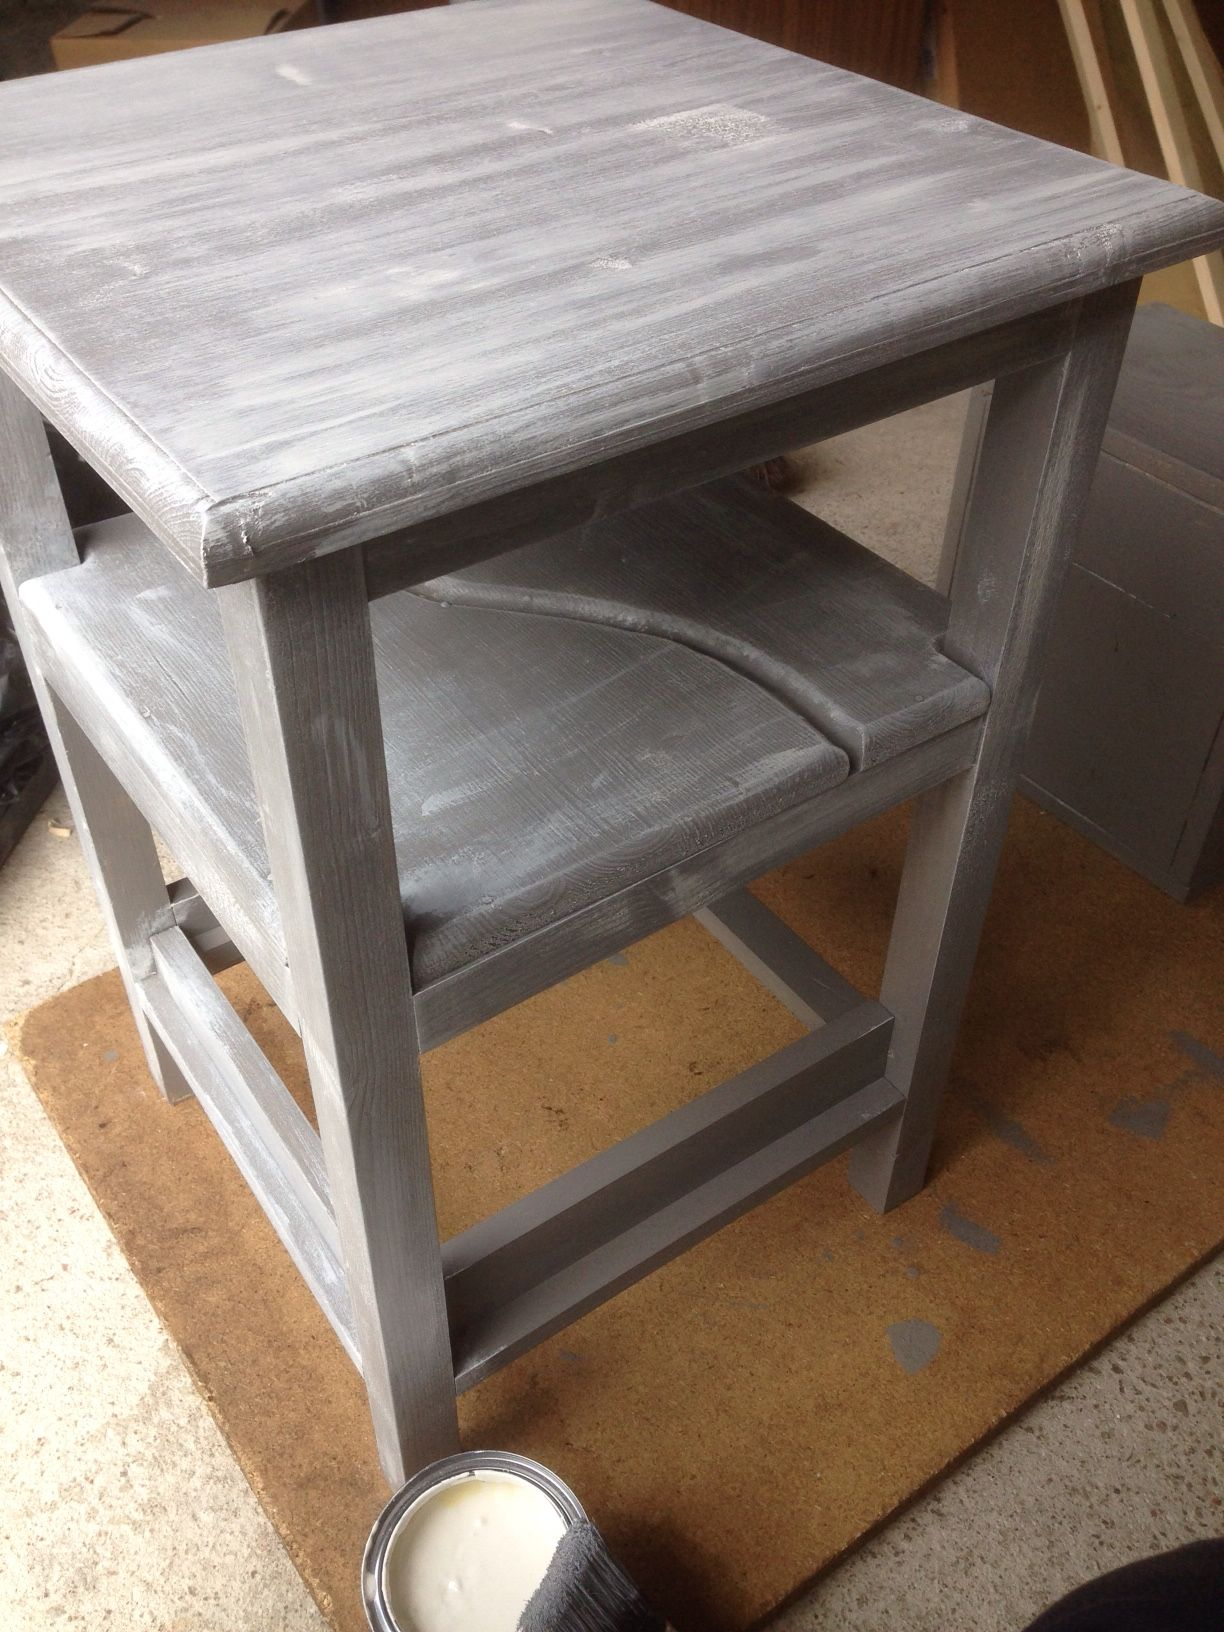 Stool Bedside Table: Homemade Bedside Table Getting A Paint Job